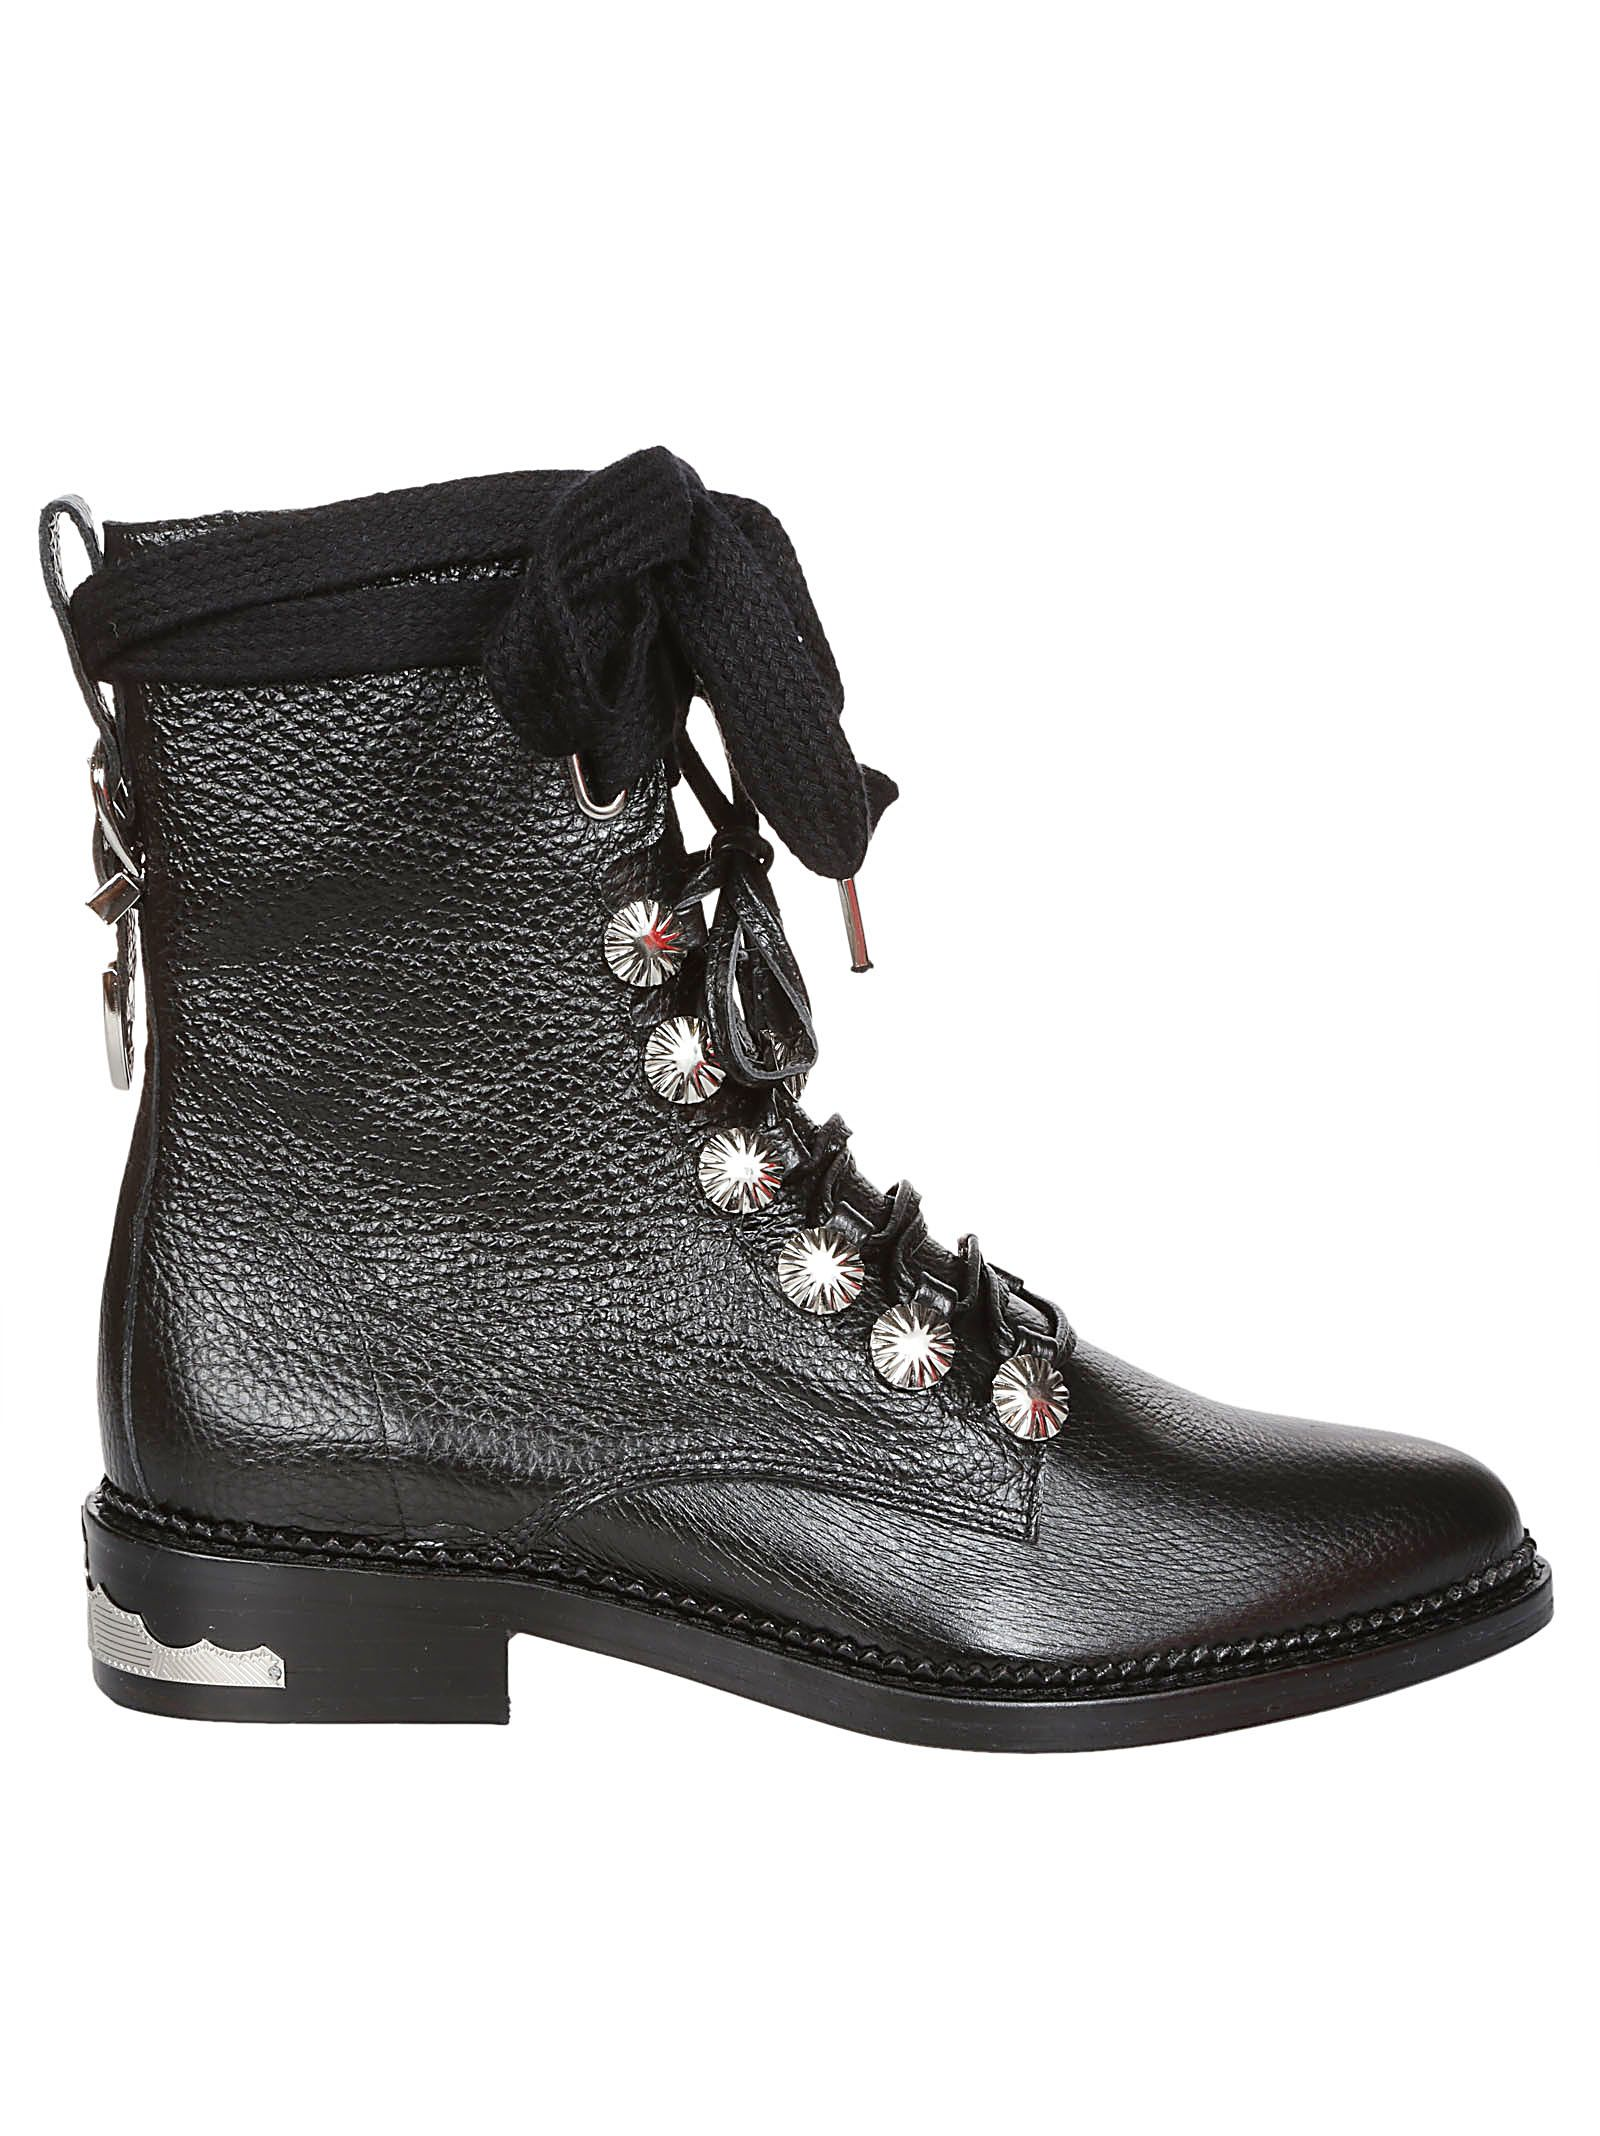 Toga STUDDED LACE UP BOOTS